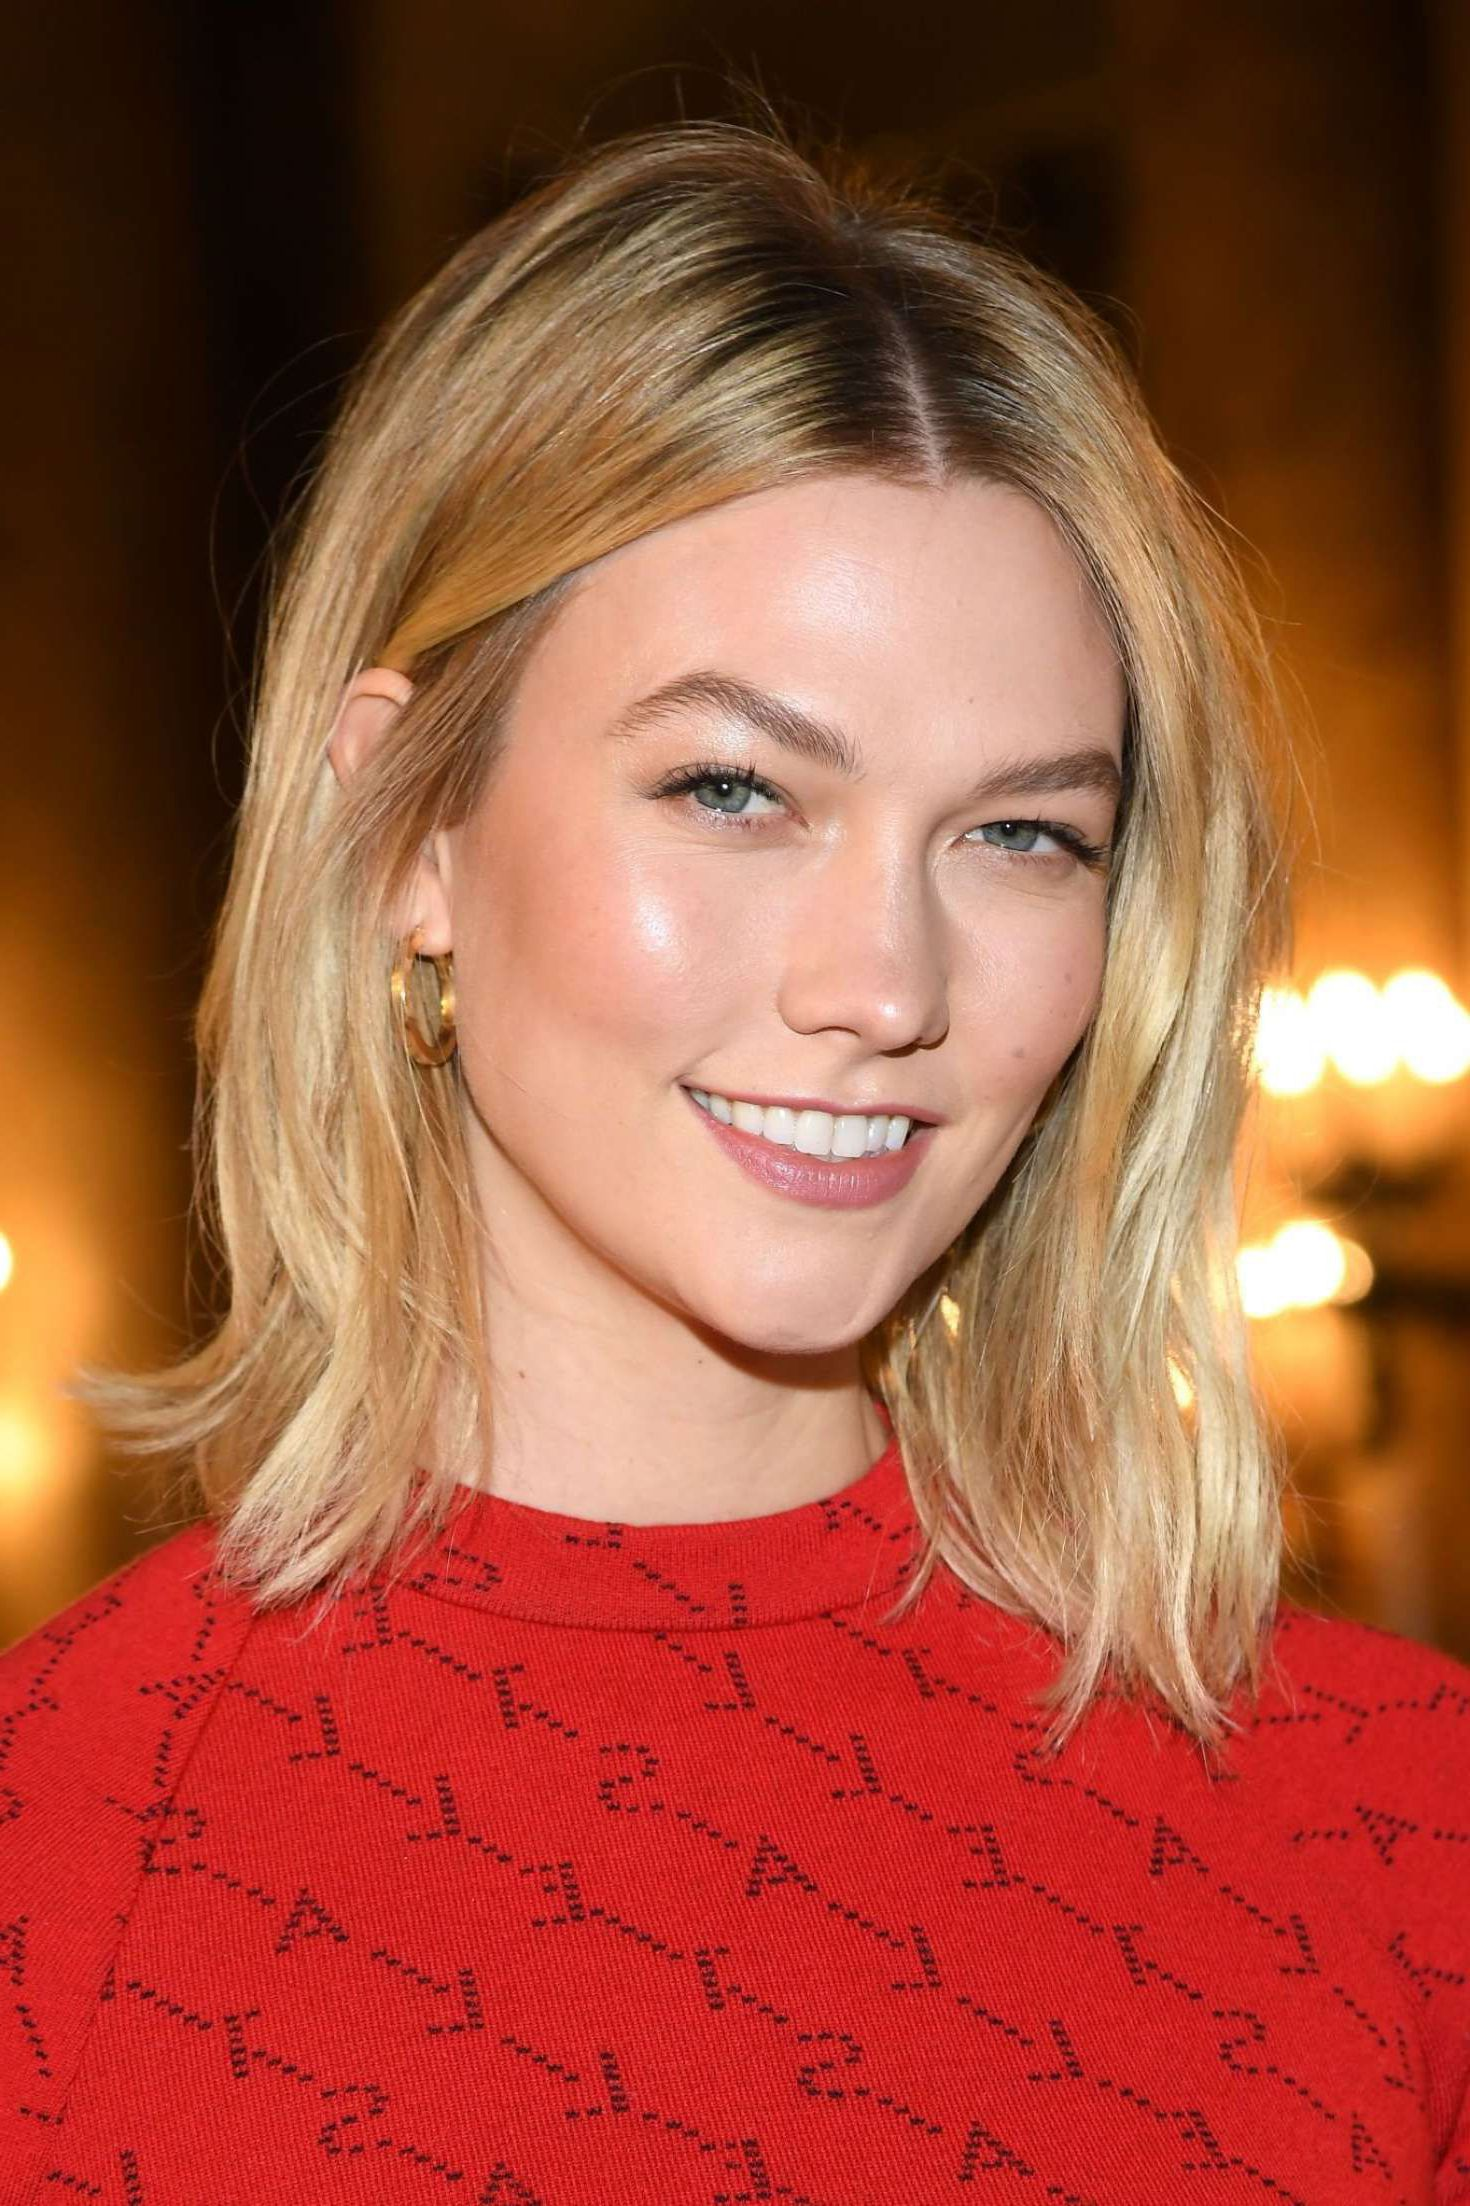 Karlie Kloss In Red Long Dress At The Stella Mccartney